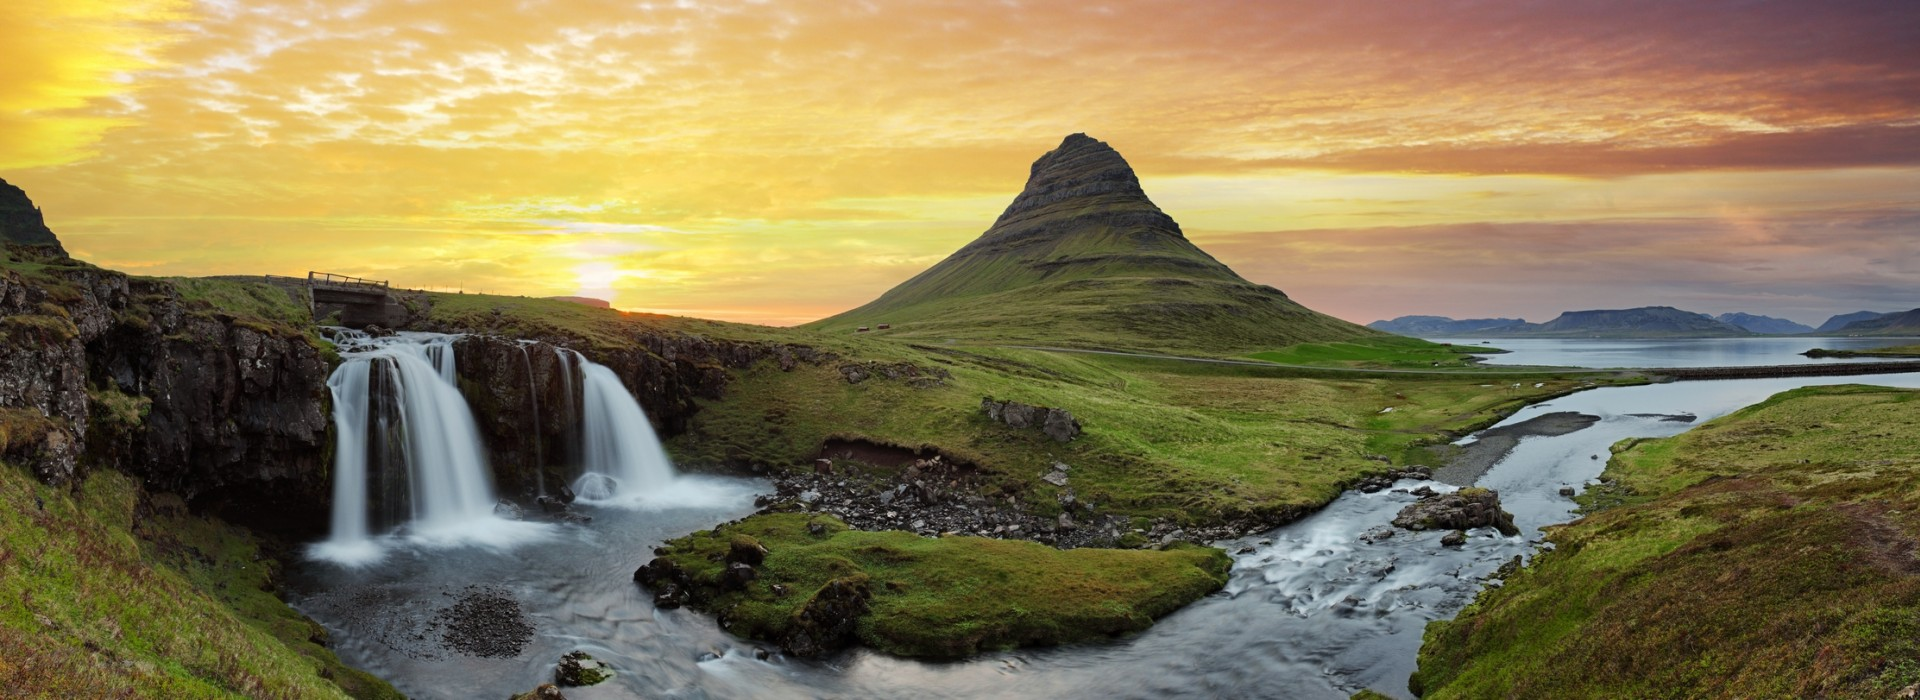 Travelling Iceland - Tours and Trips in Iceland